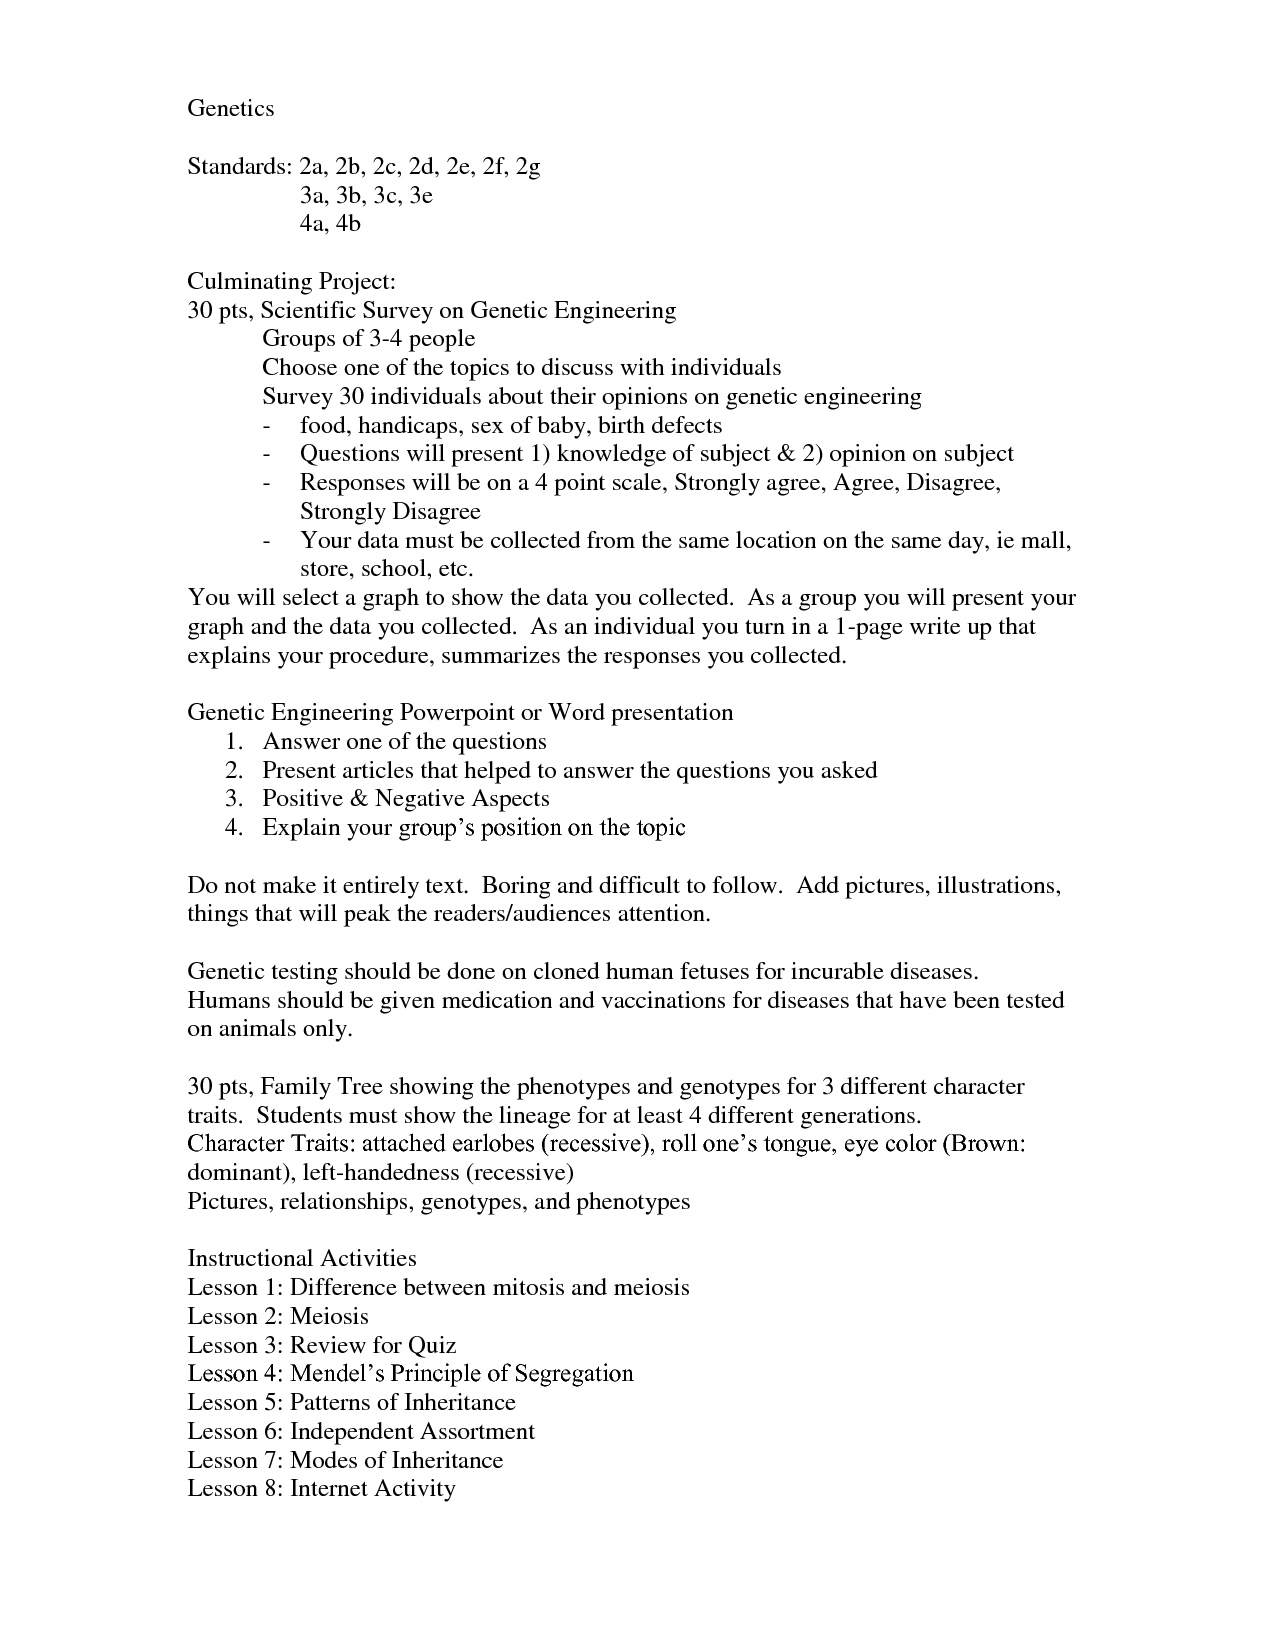 Dna The Molecule Of Heredity Worksheet Key